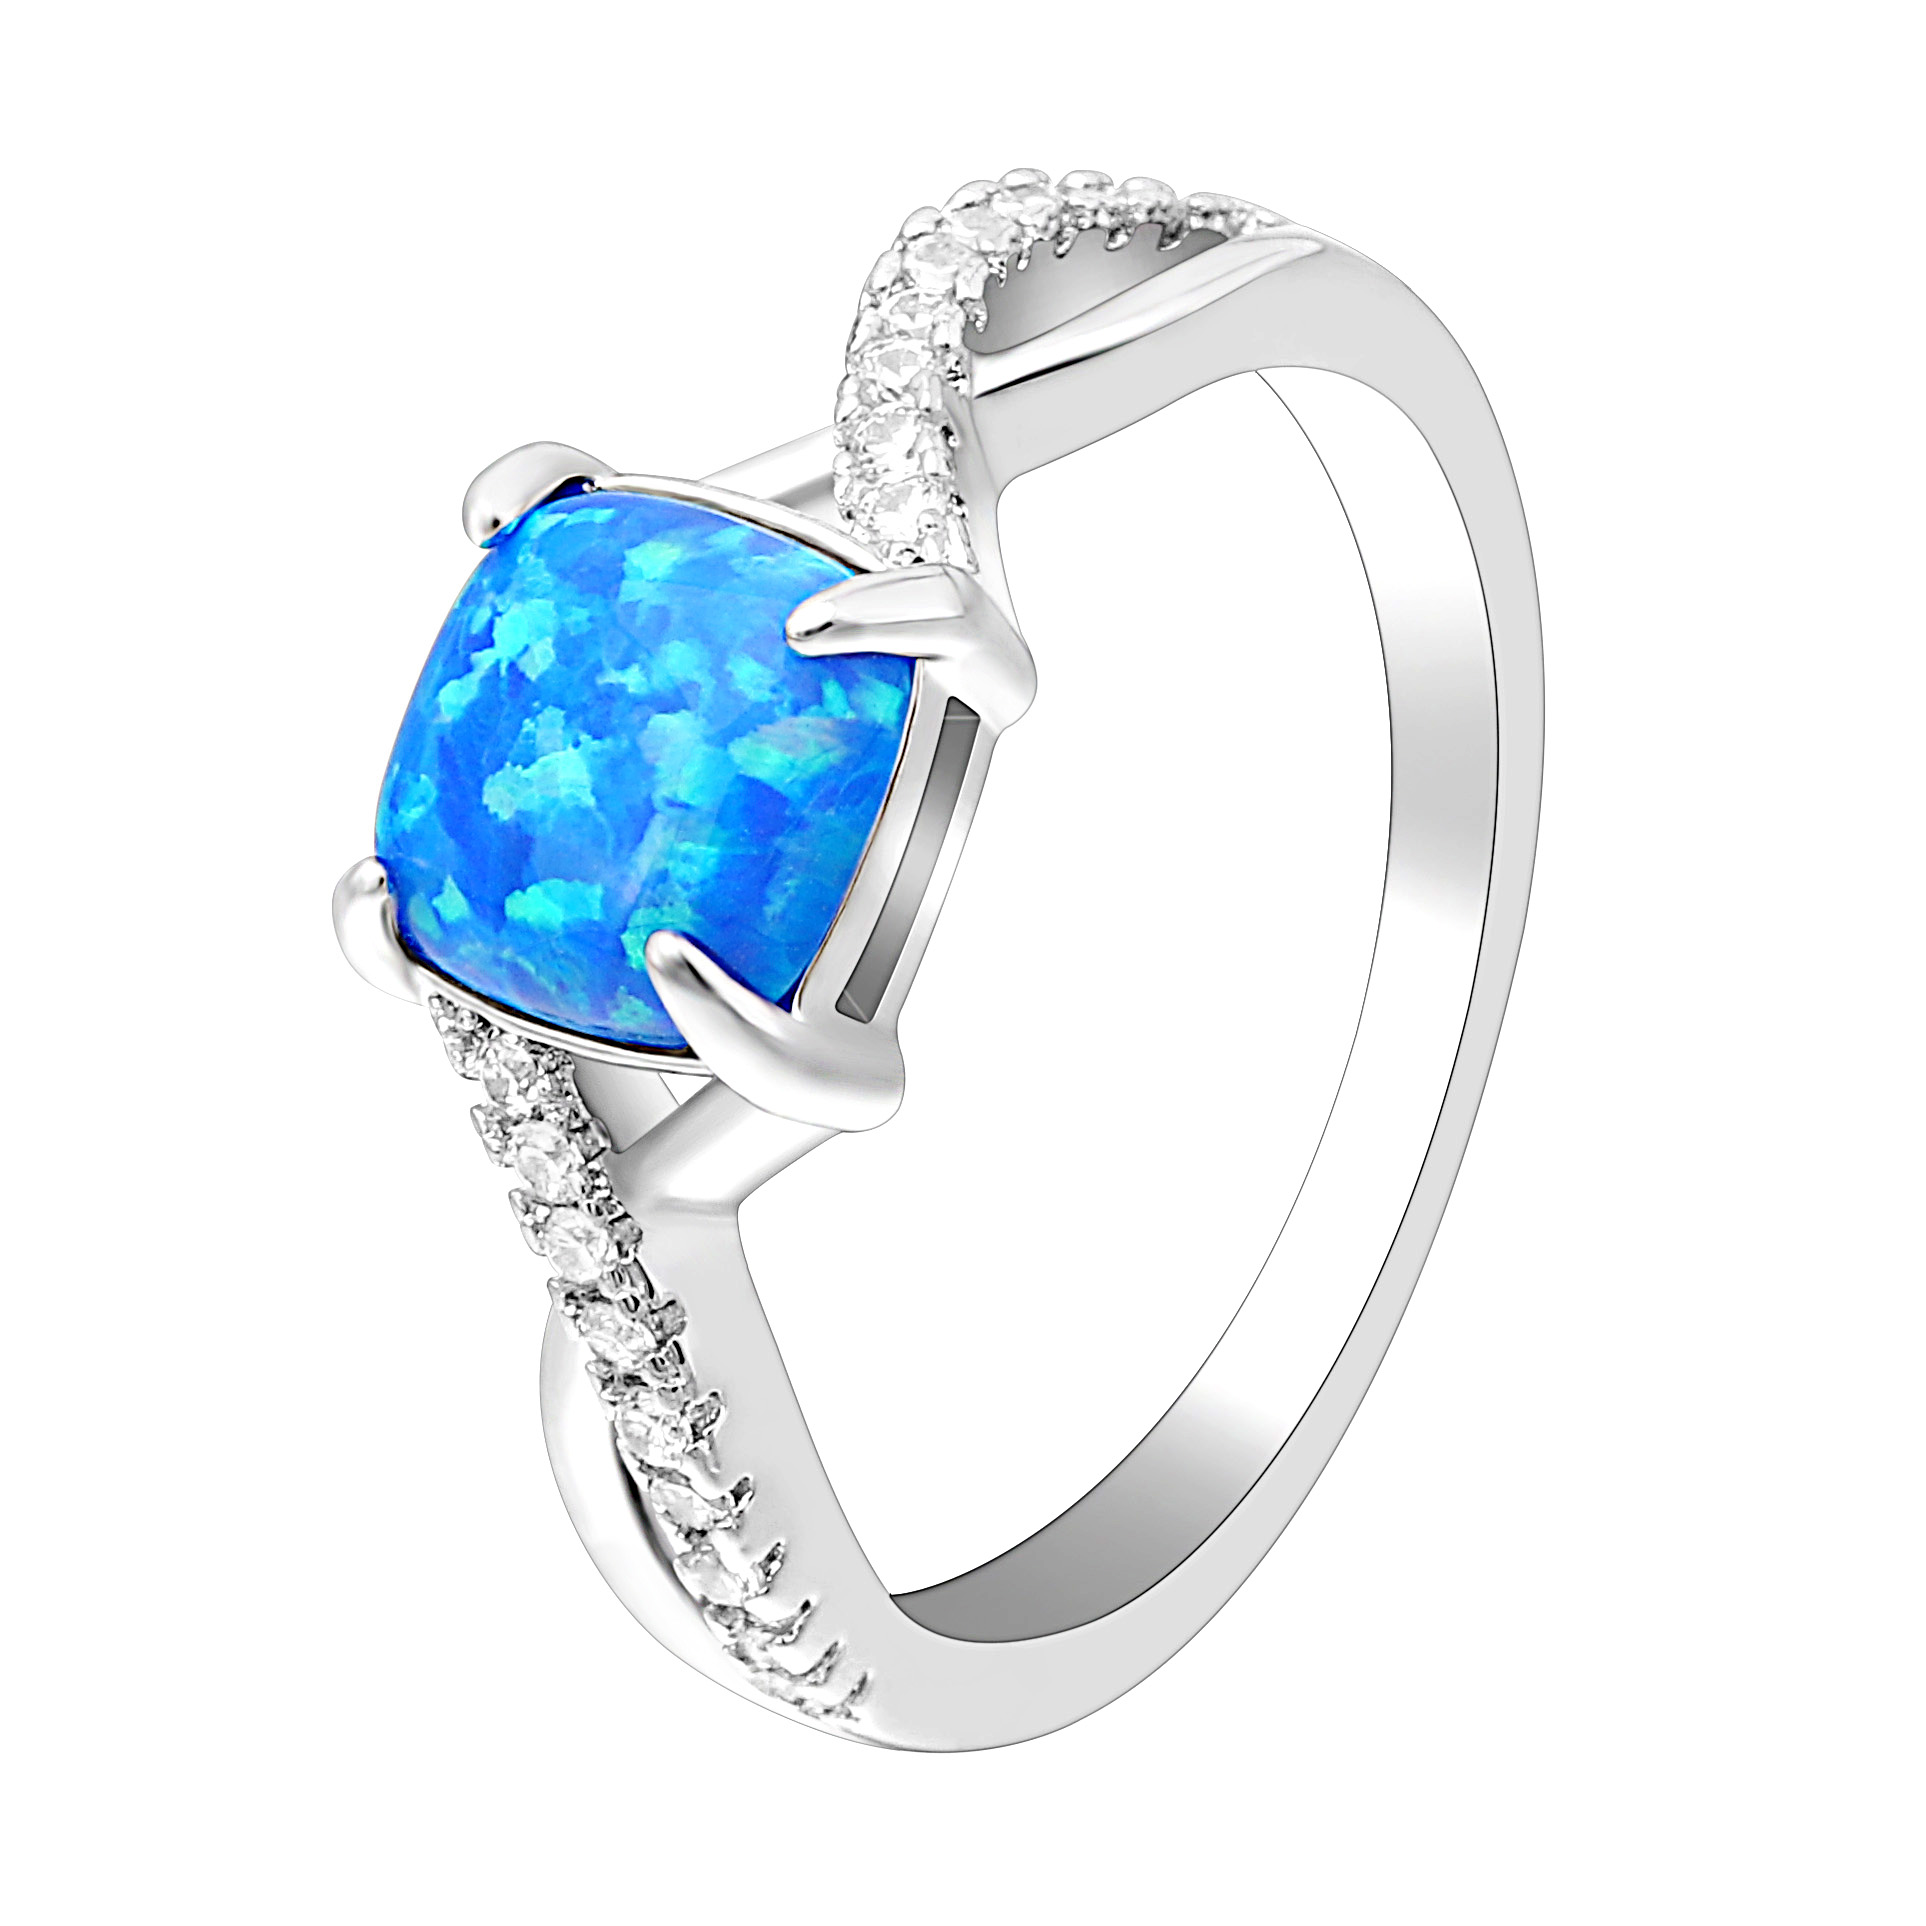 2018 Double Cross Finger Ring for Women Paved Blue Opals Luxury Zircon Ring Promise Engagement Rings Anniversary Birth Gift